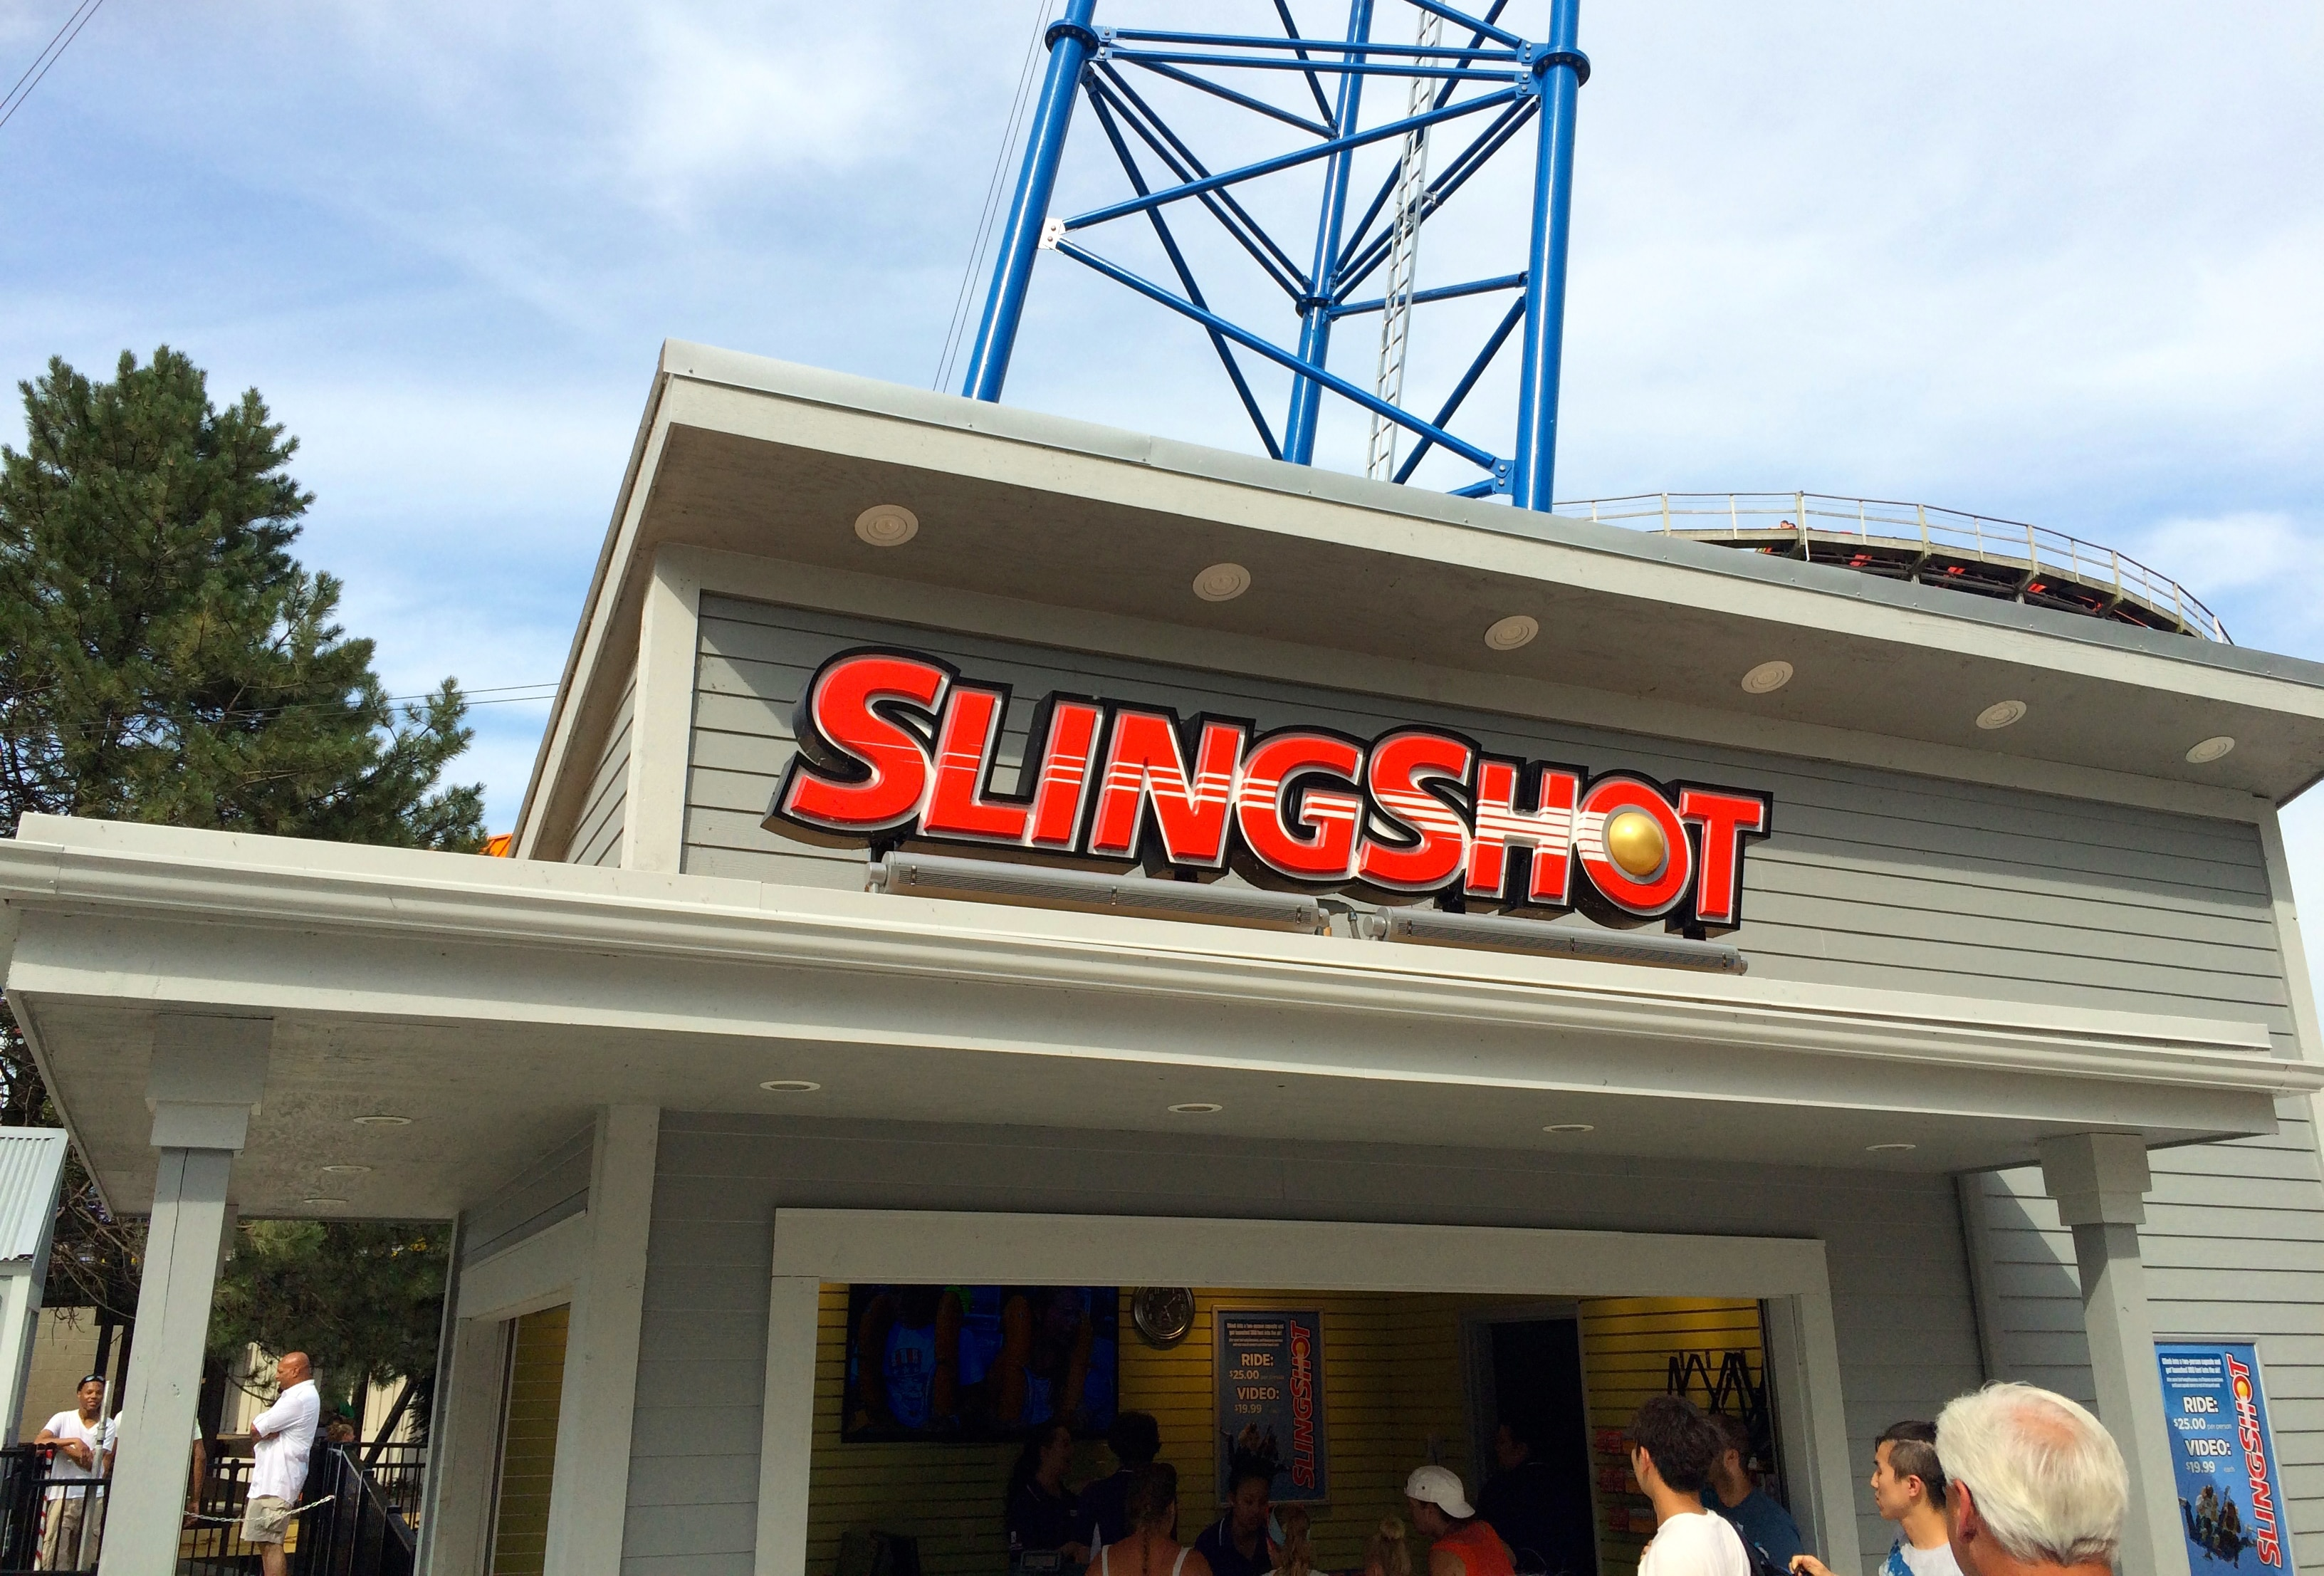 people fall in line to buy a ticket in slingshot booth